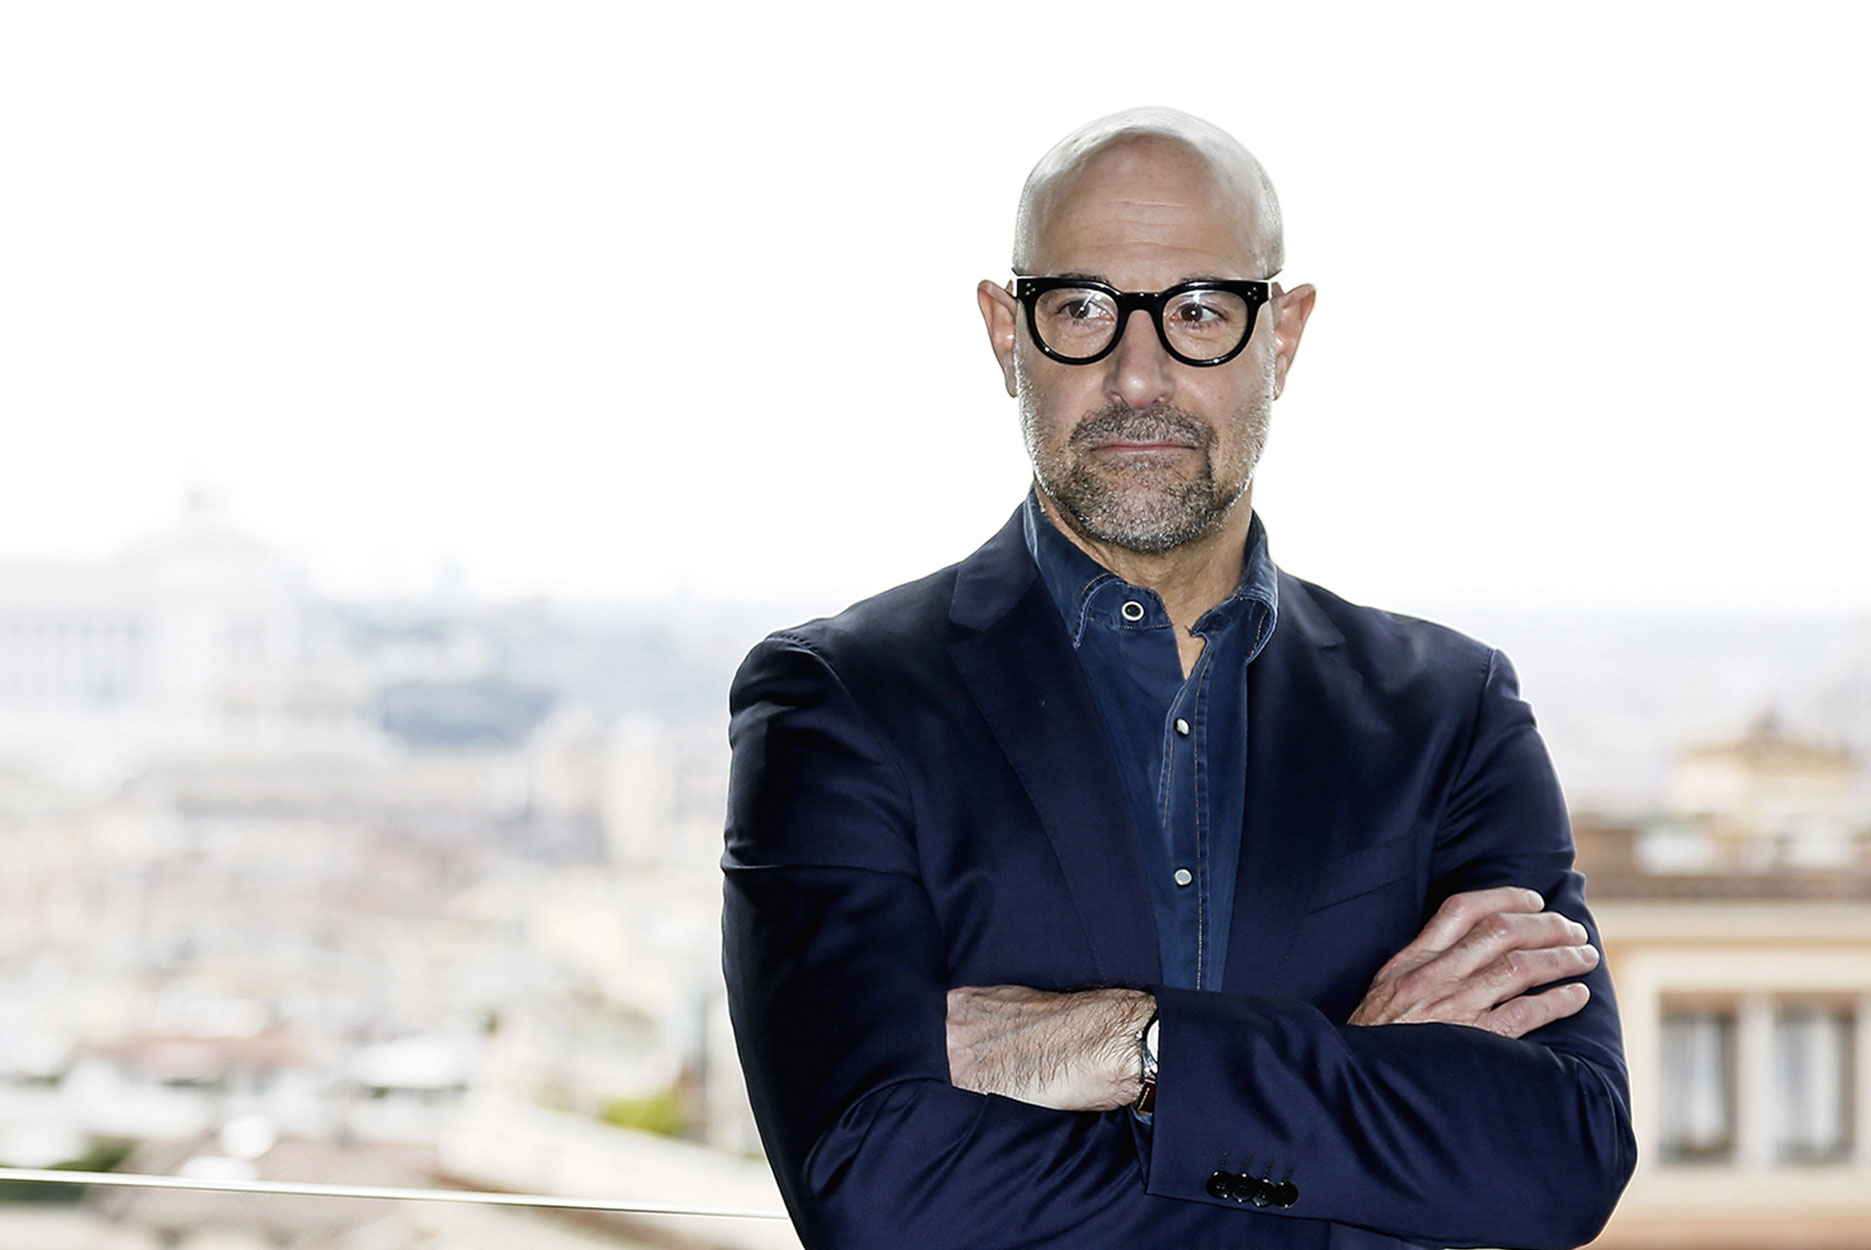 Stanley Tucci poses on a balcony in Rome